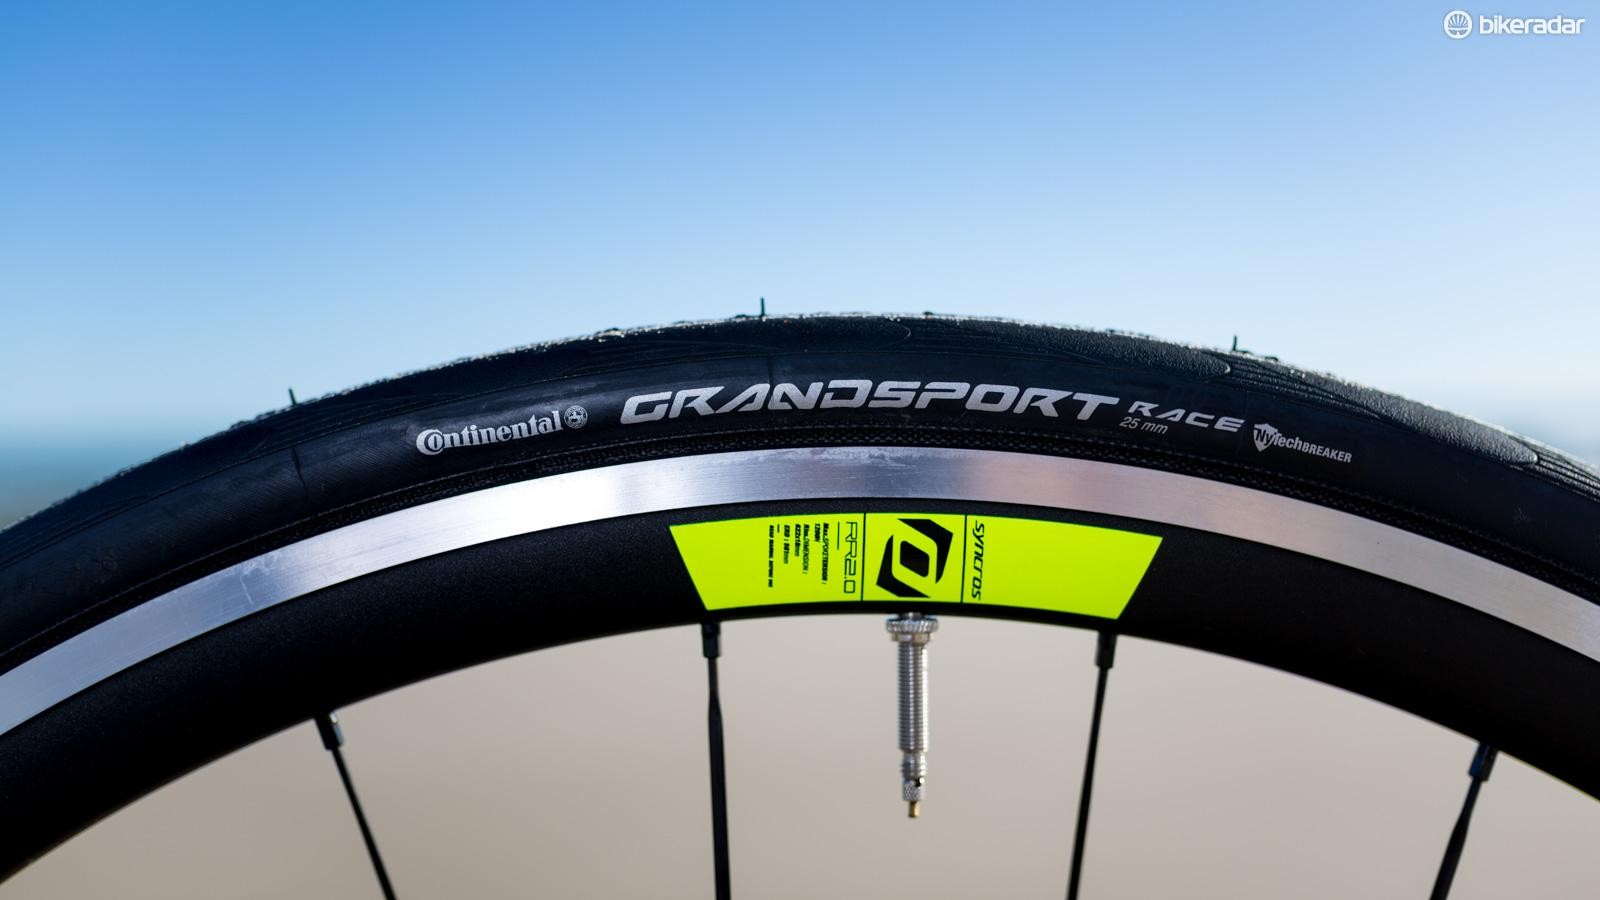 Upgrading your rubber not only sheds weight but improves ride quality